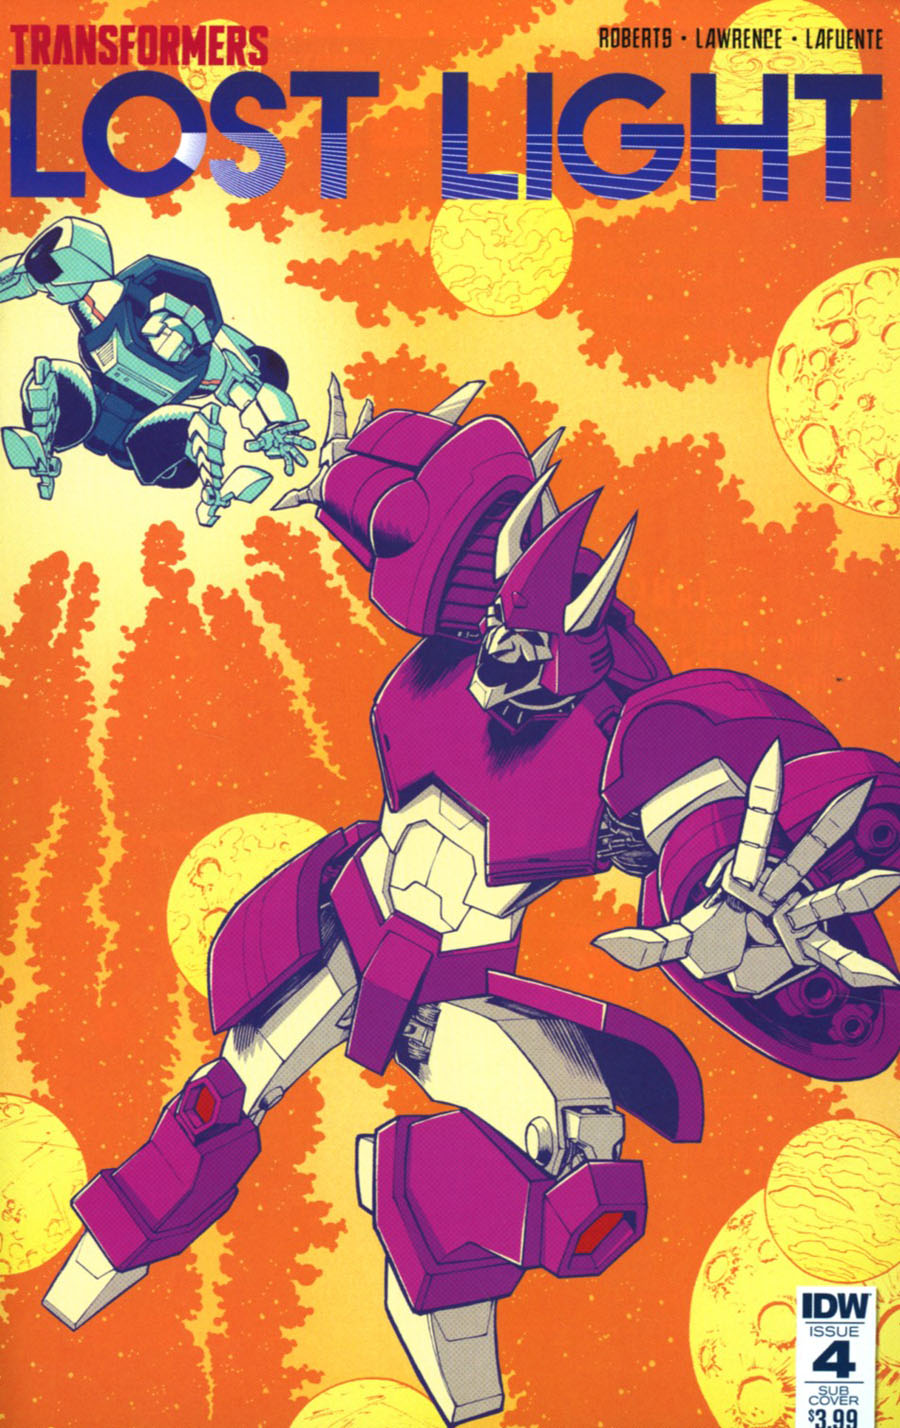 Transformers Lost Light #4 Cover B Variant Nick Roche Subscription Cover